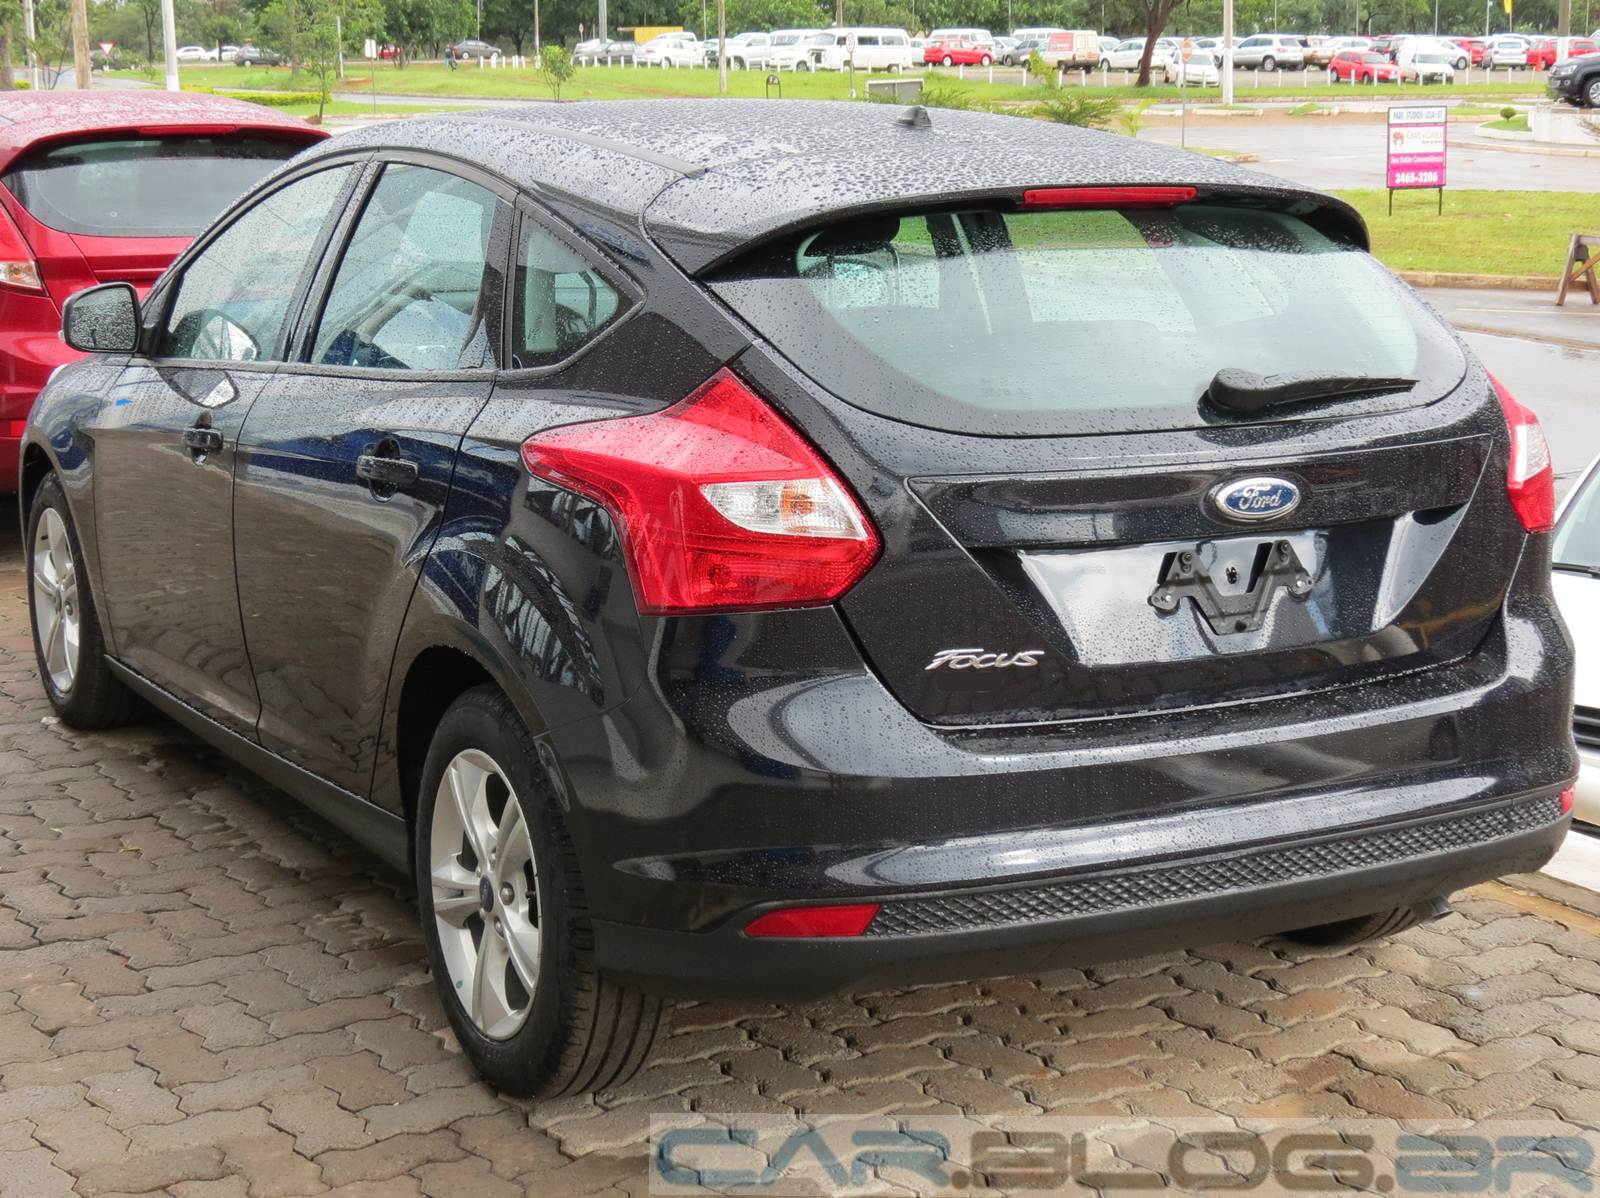 <b>Focus Hatch SE 2.0 AT</b>: fotos, <b>consumo</b> e <b>especificações</b> | CAR.BLOG <b>...</b> 2014